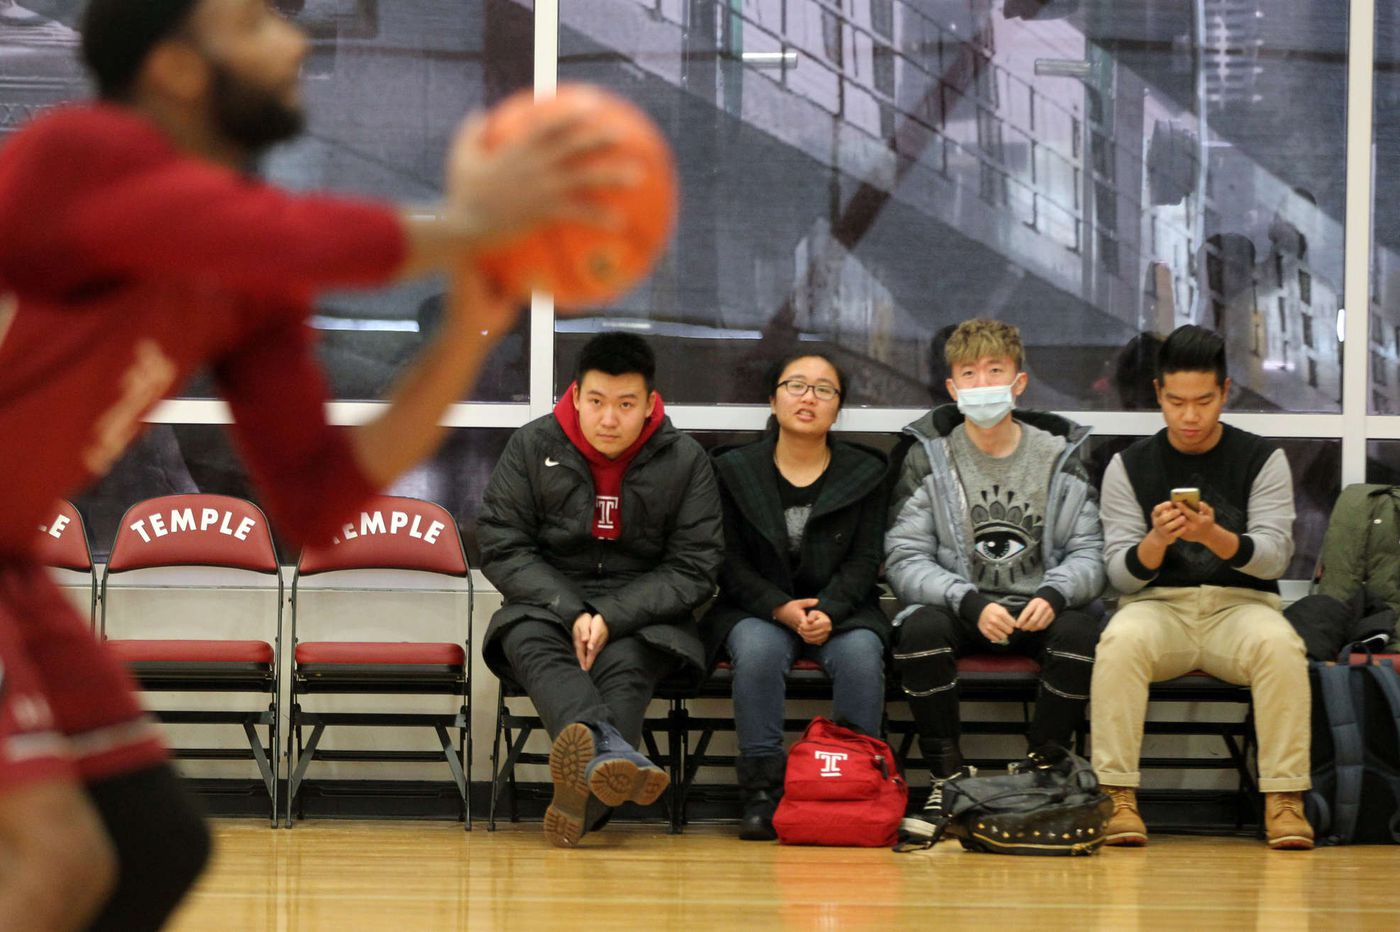 Temple hoops aims for new audience - in China